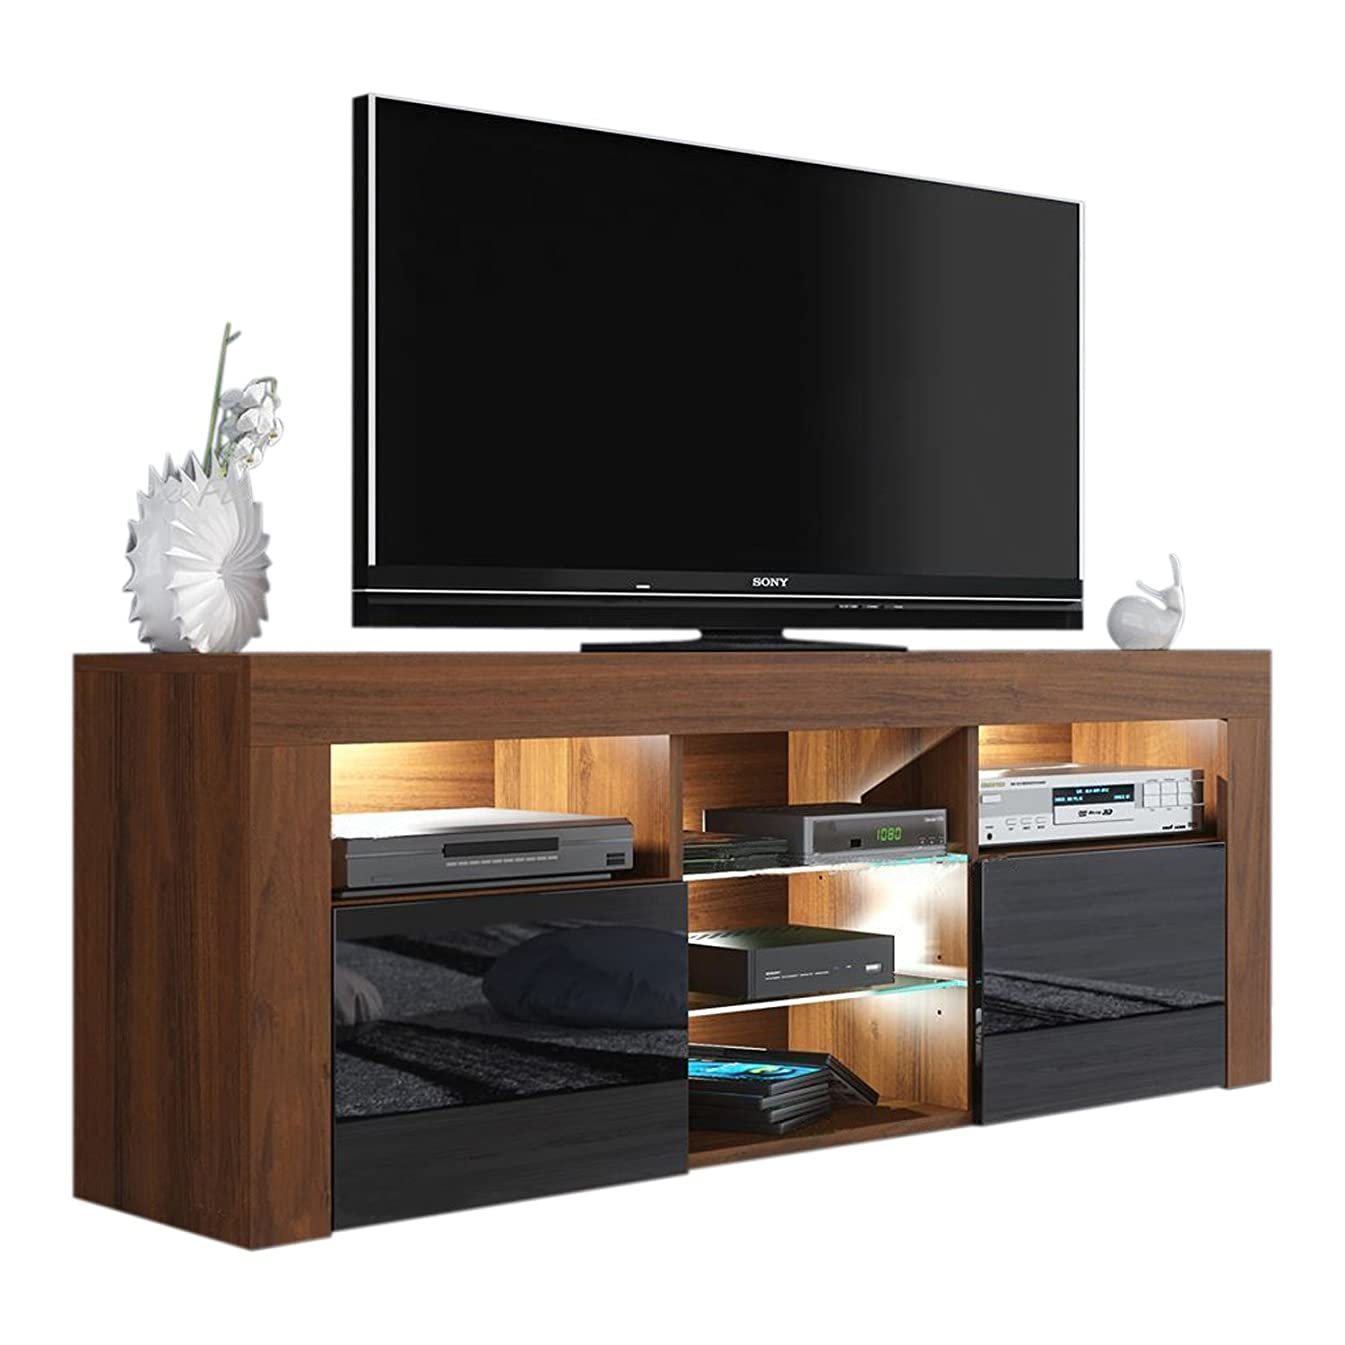 MEBLE FURNITURE & RUGS Milano 145 Modern TV Stand Matte Body High Gloss Fronts (Walnut/Black)